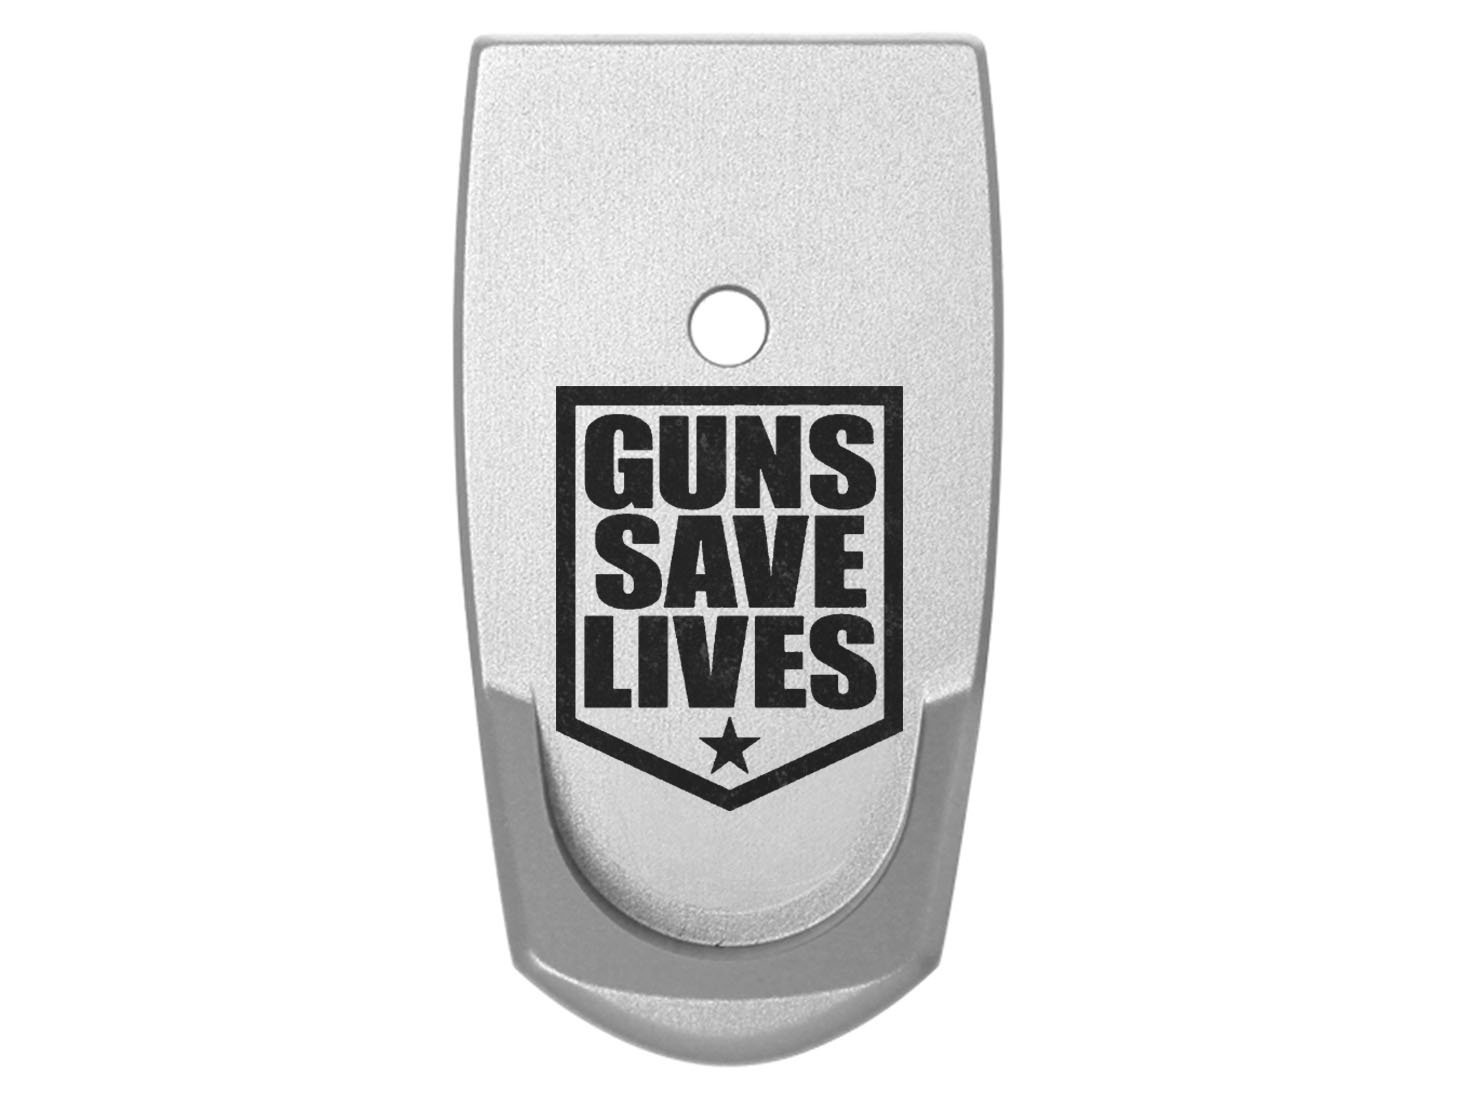 Guns Save Lives Patch Grip Extension Floor Base Plate V2 Silver Silver for S&W Smith & Wesson Shield 9mm .40